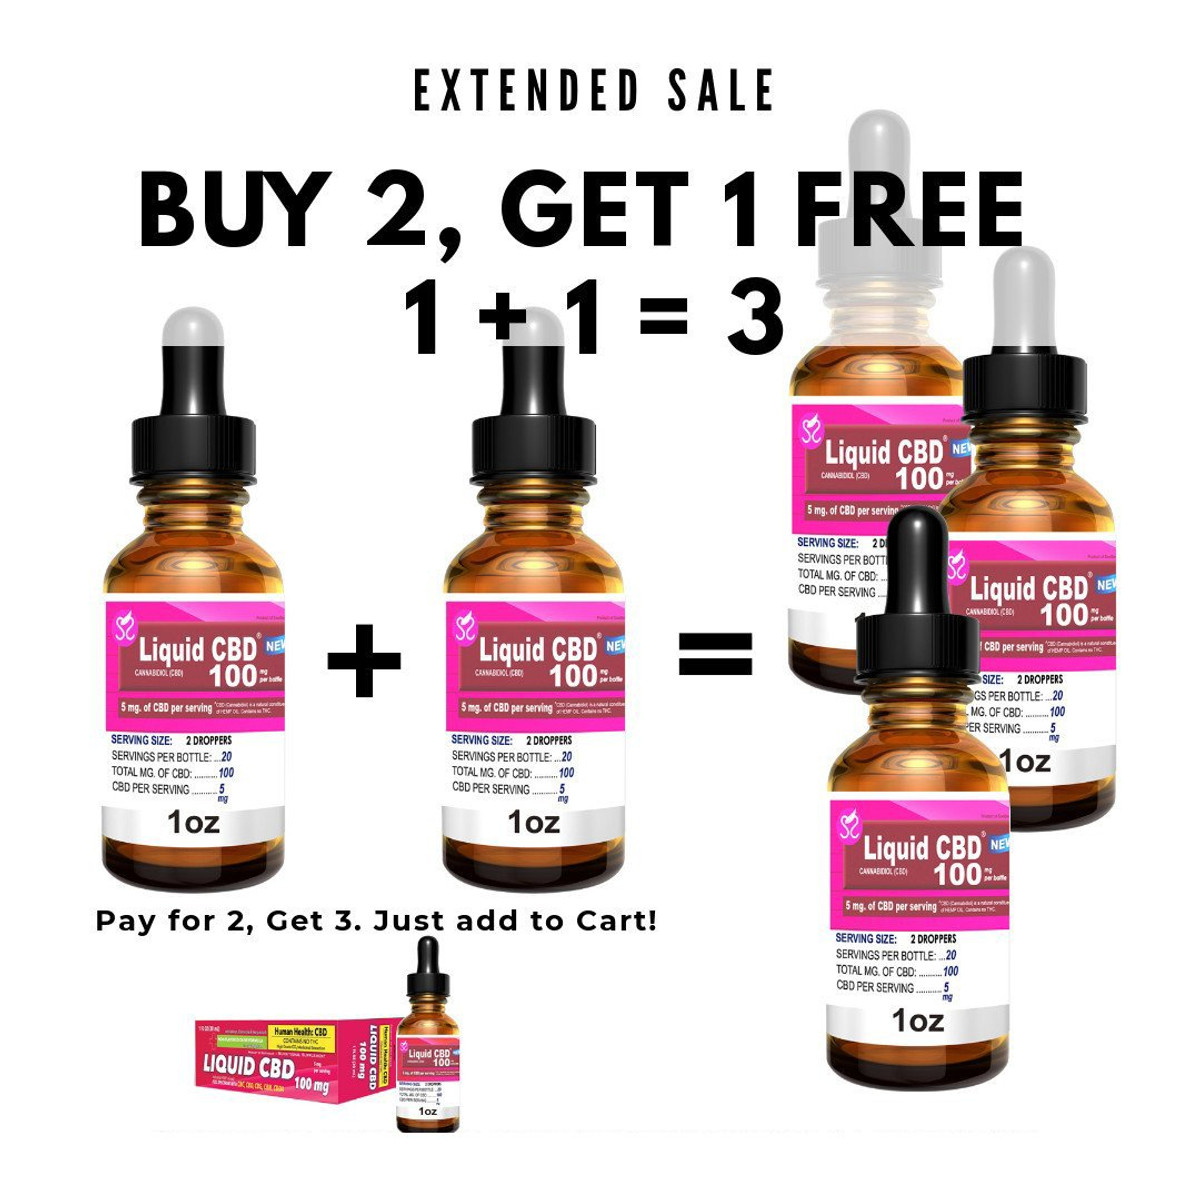 1 +1 = 3 | Sootheen® Liquid CBD 100mg - 1 oz.